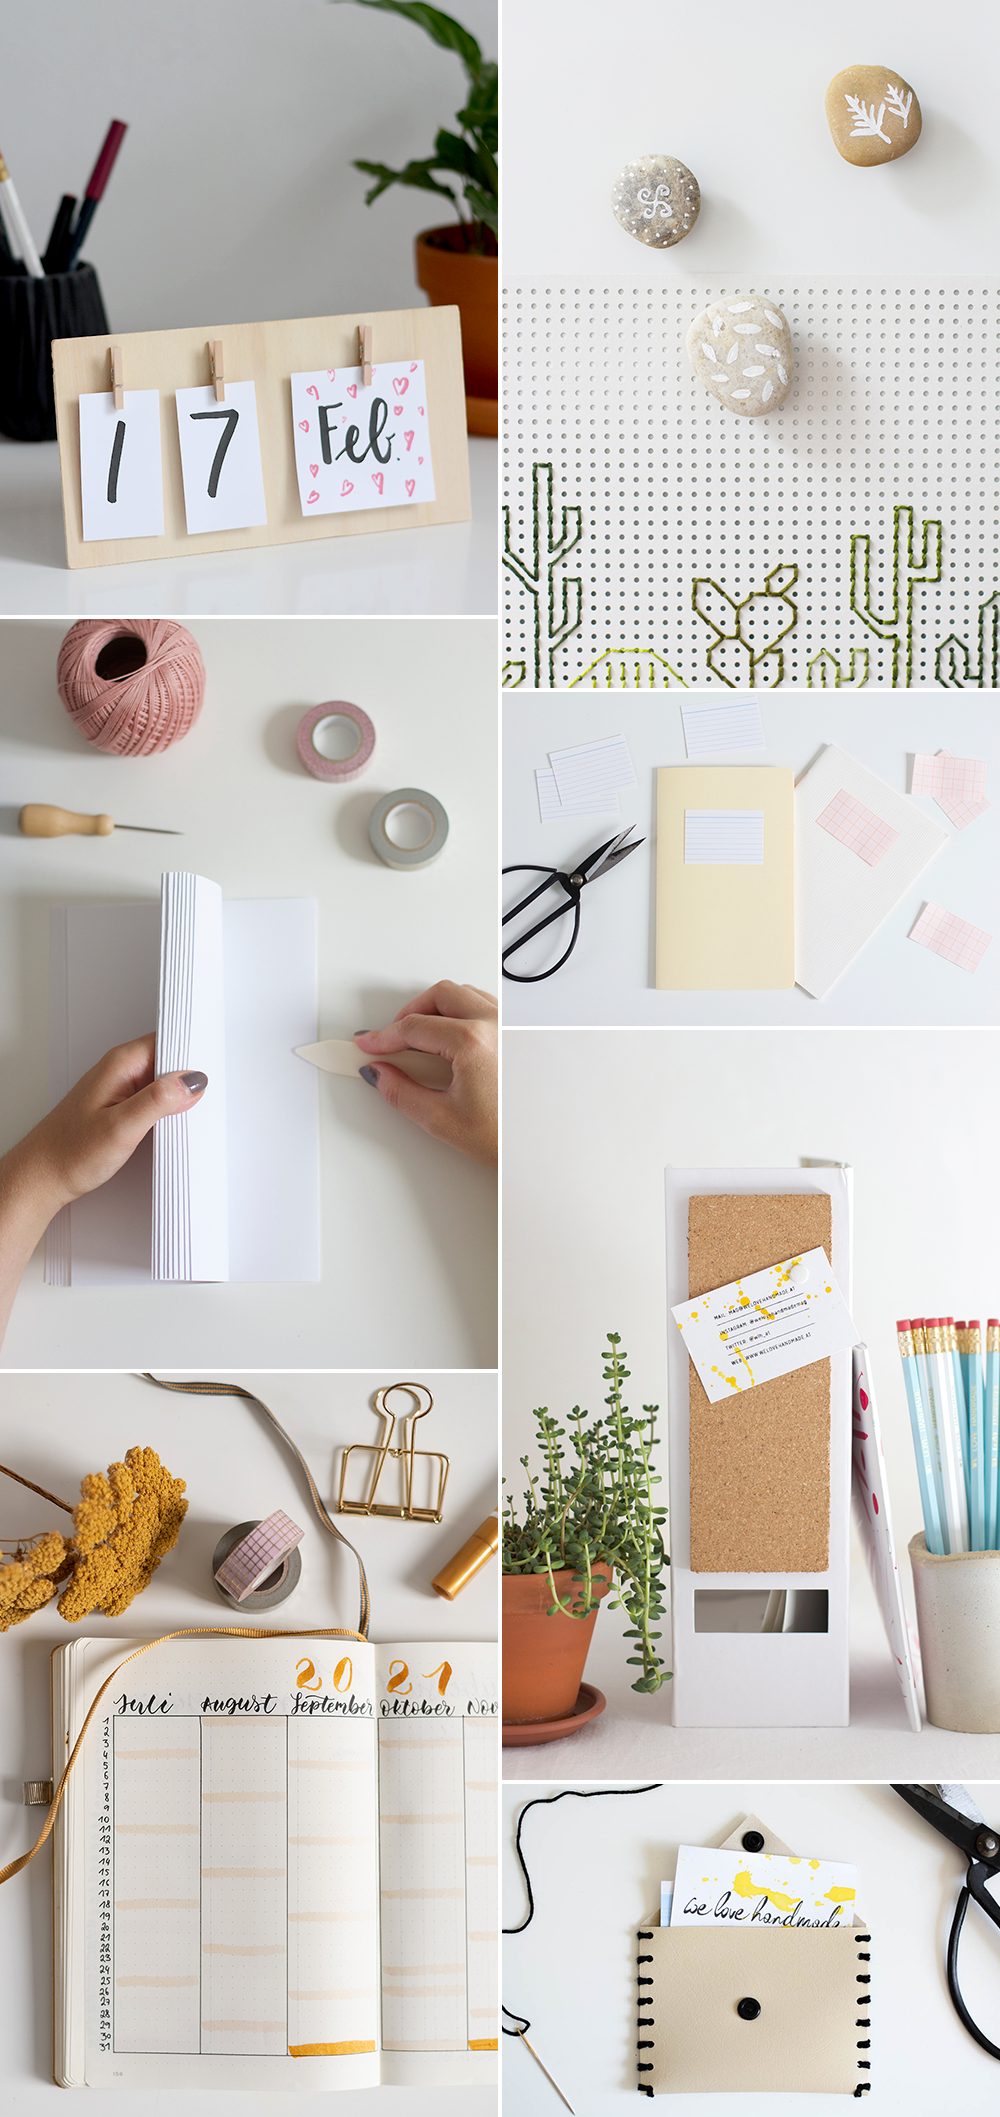 DIY-Ideen fürs Homeoffice | we love handmade